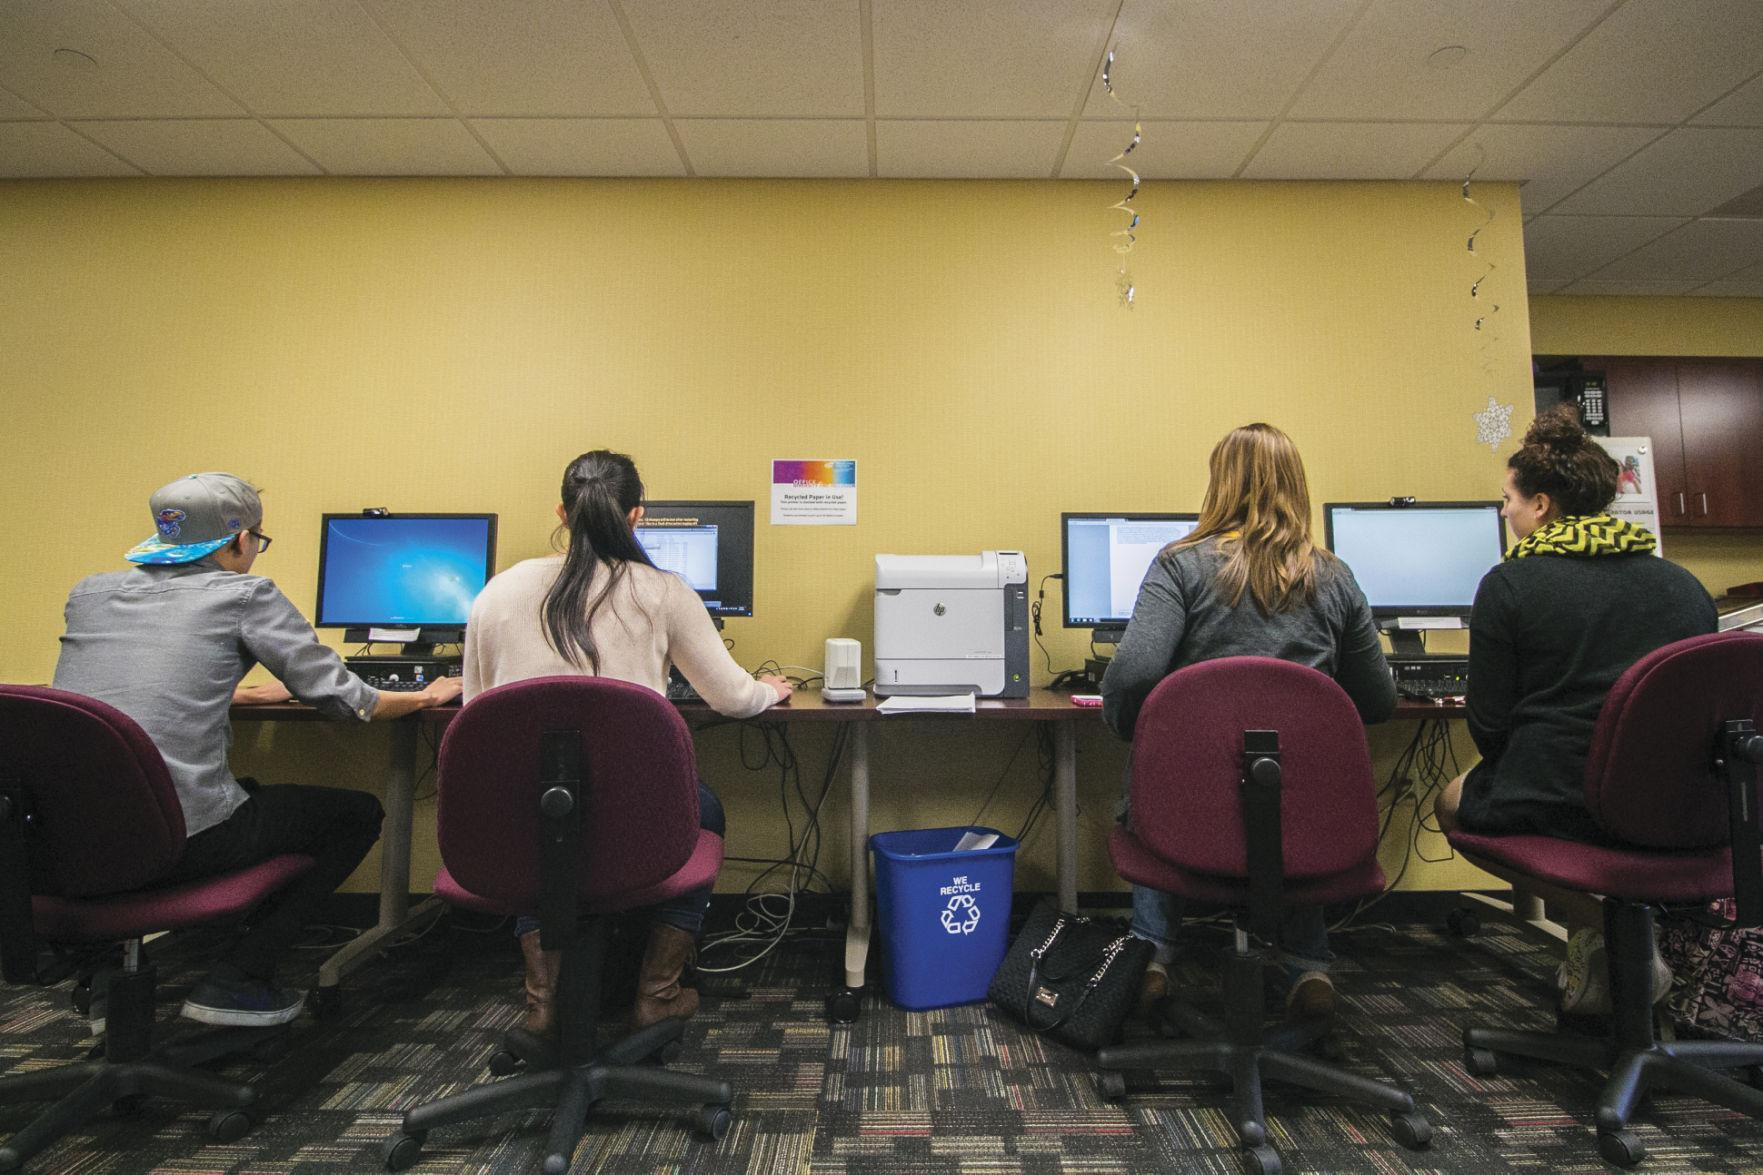 FILE PHOTO: Students work on projects at a computer lab at the Office of Diversity and Inclusion Wednesday.